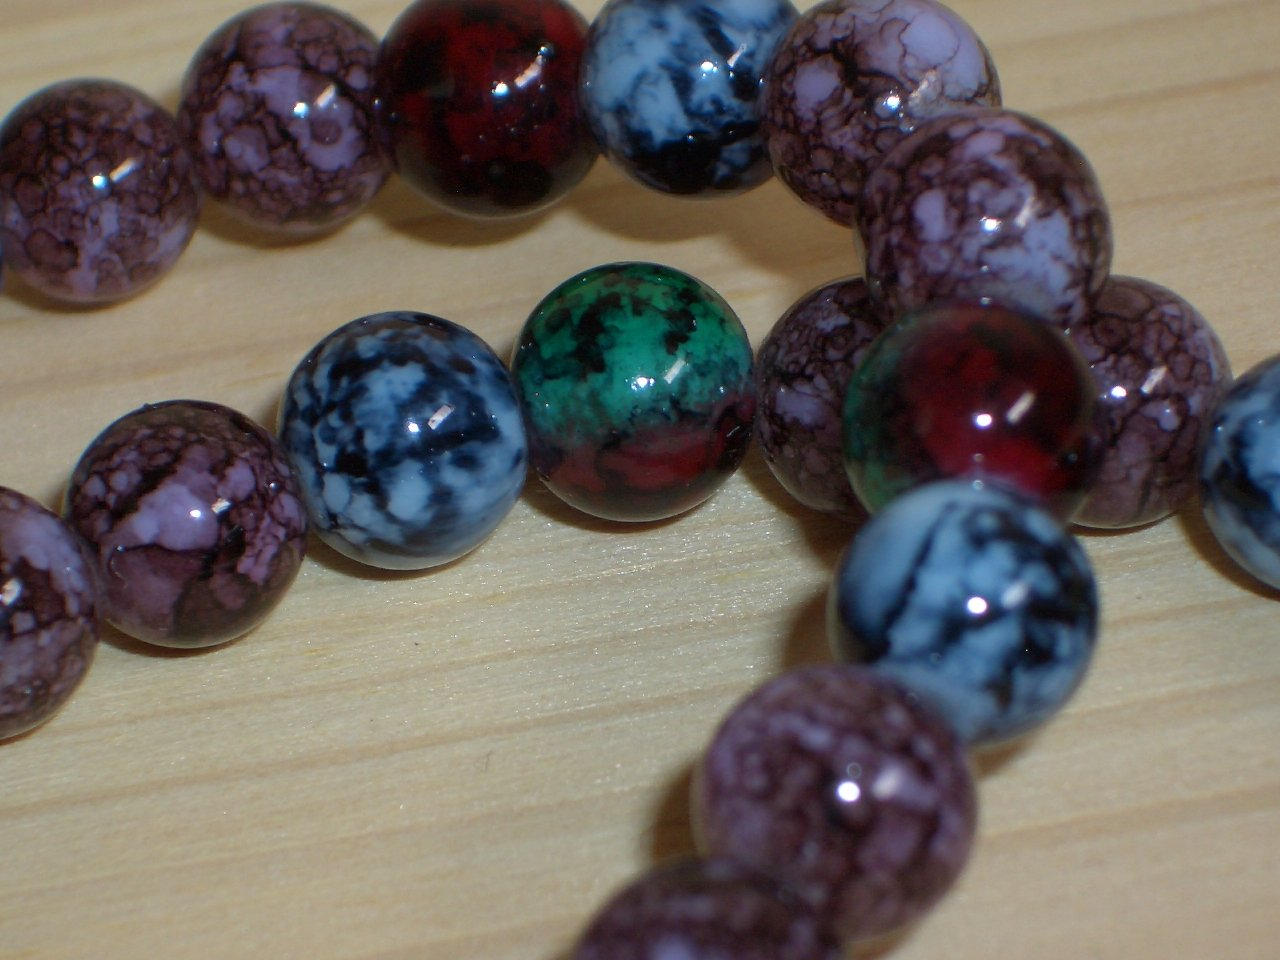 Boho Chic Abstract Matinee Necklace Round Glass Beads Stylish Marbelized Green Blue Purple Plum Red